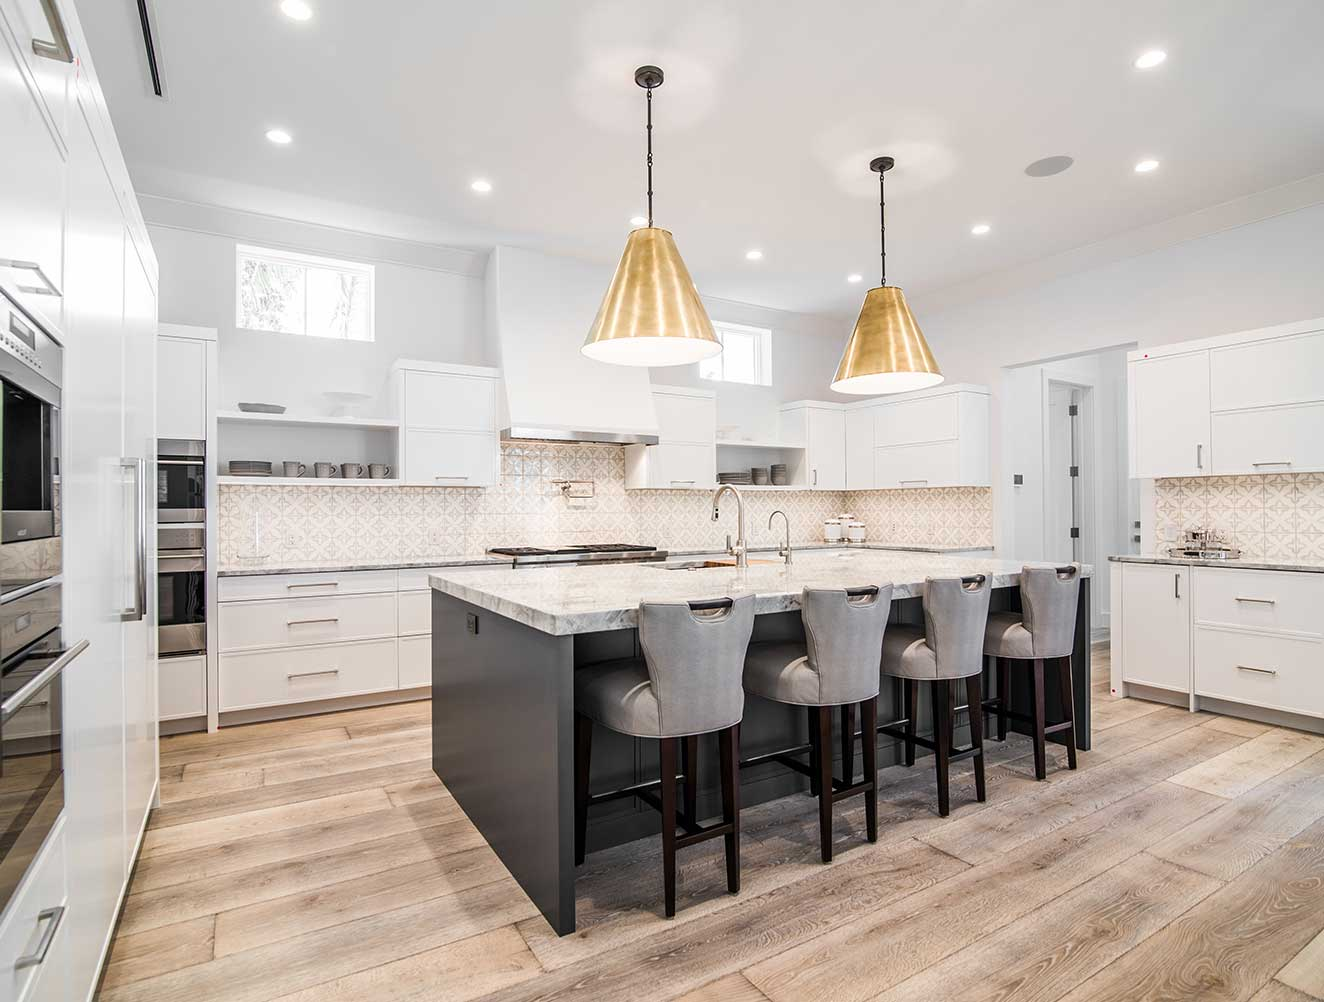 Kitchen at 10th Ave S. Residence in Naples Florida, single family home designed by Kukk Architecture & Design Naples Architecture Firm